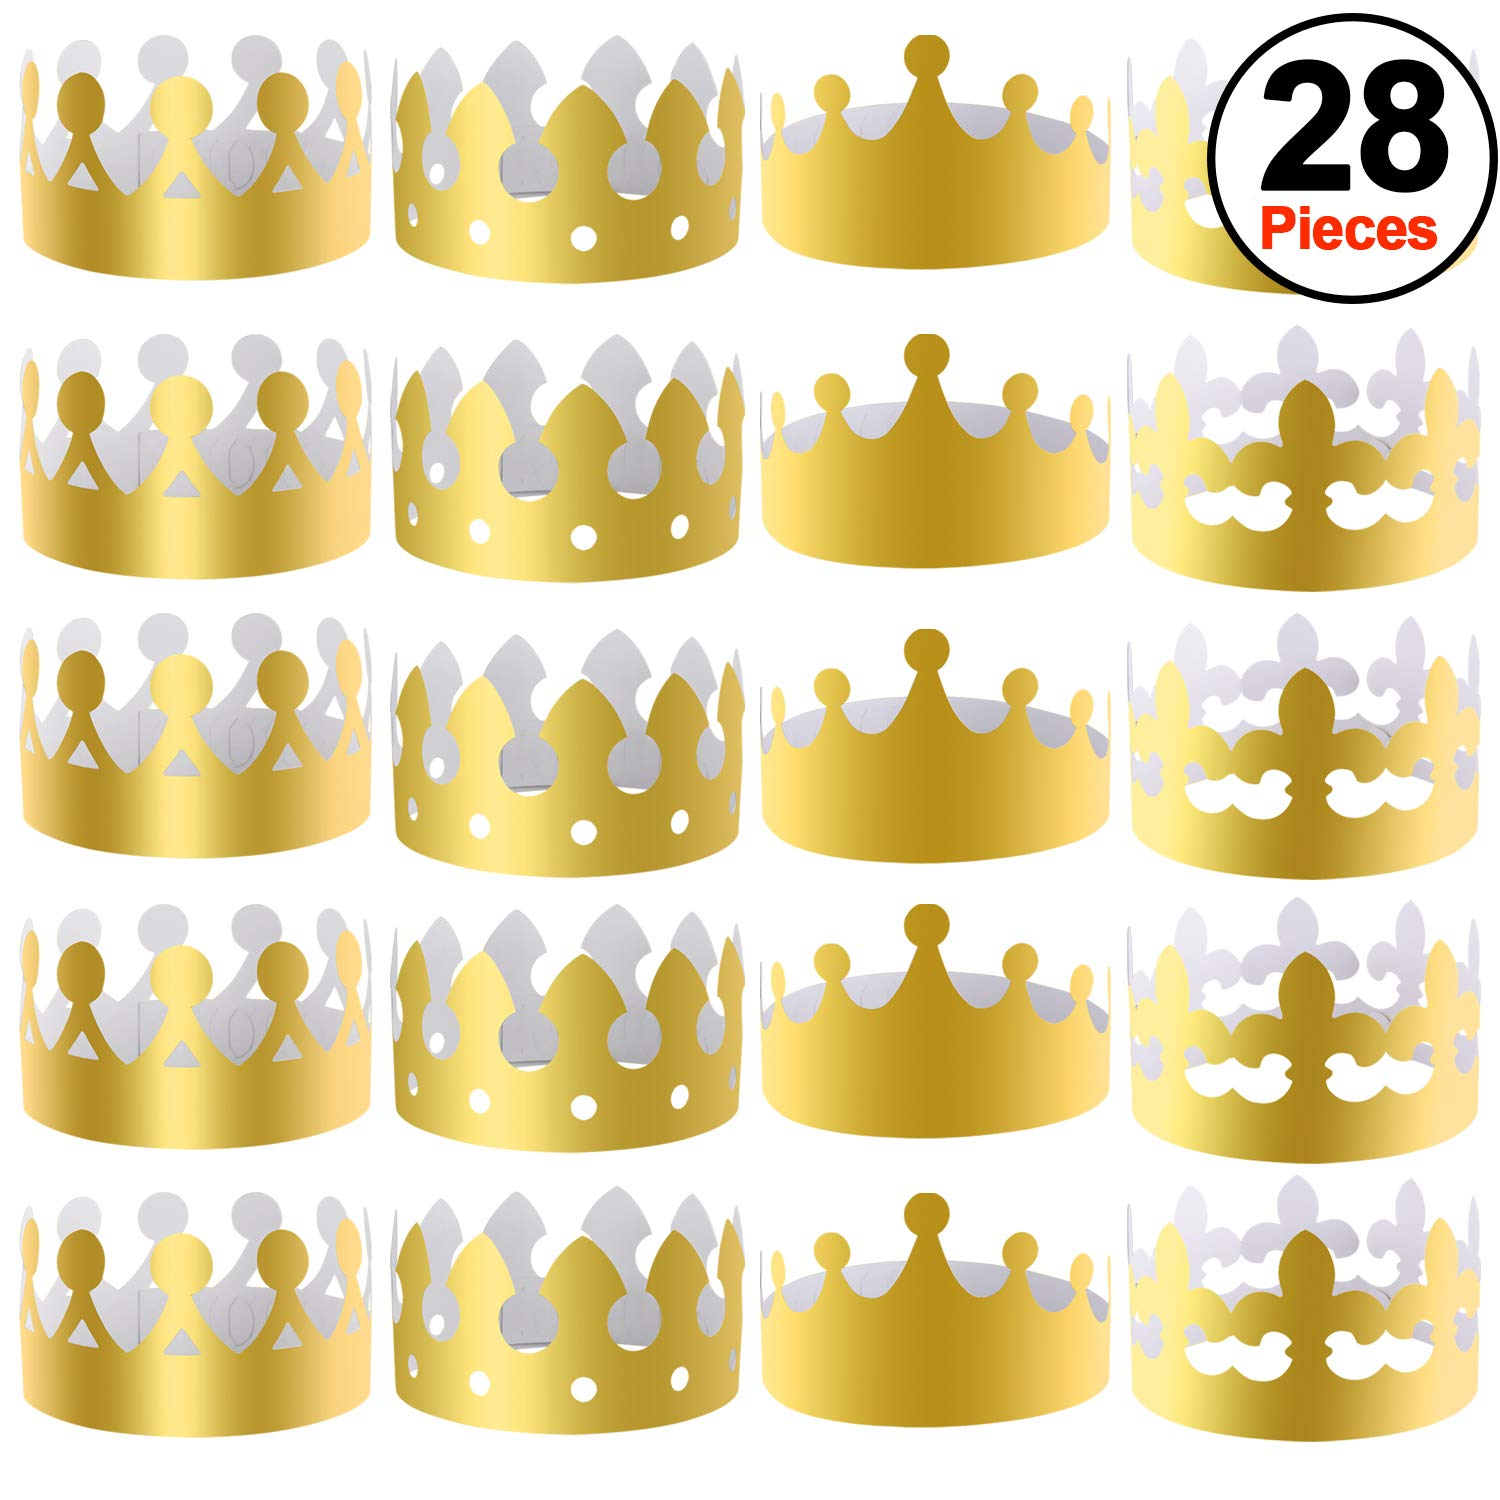 SIQUK 28 Pieces Gold Paper Crowns Party King Crown Paper Hats for Party and Celebration by SIQUK